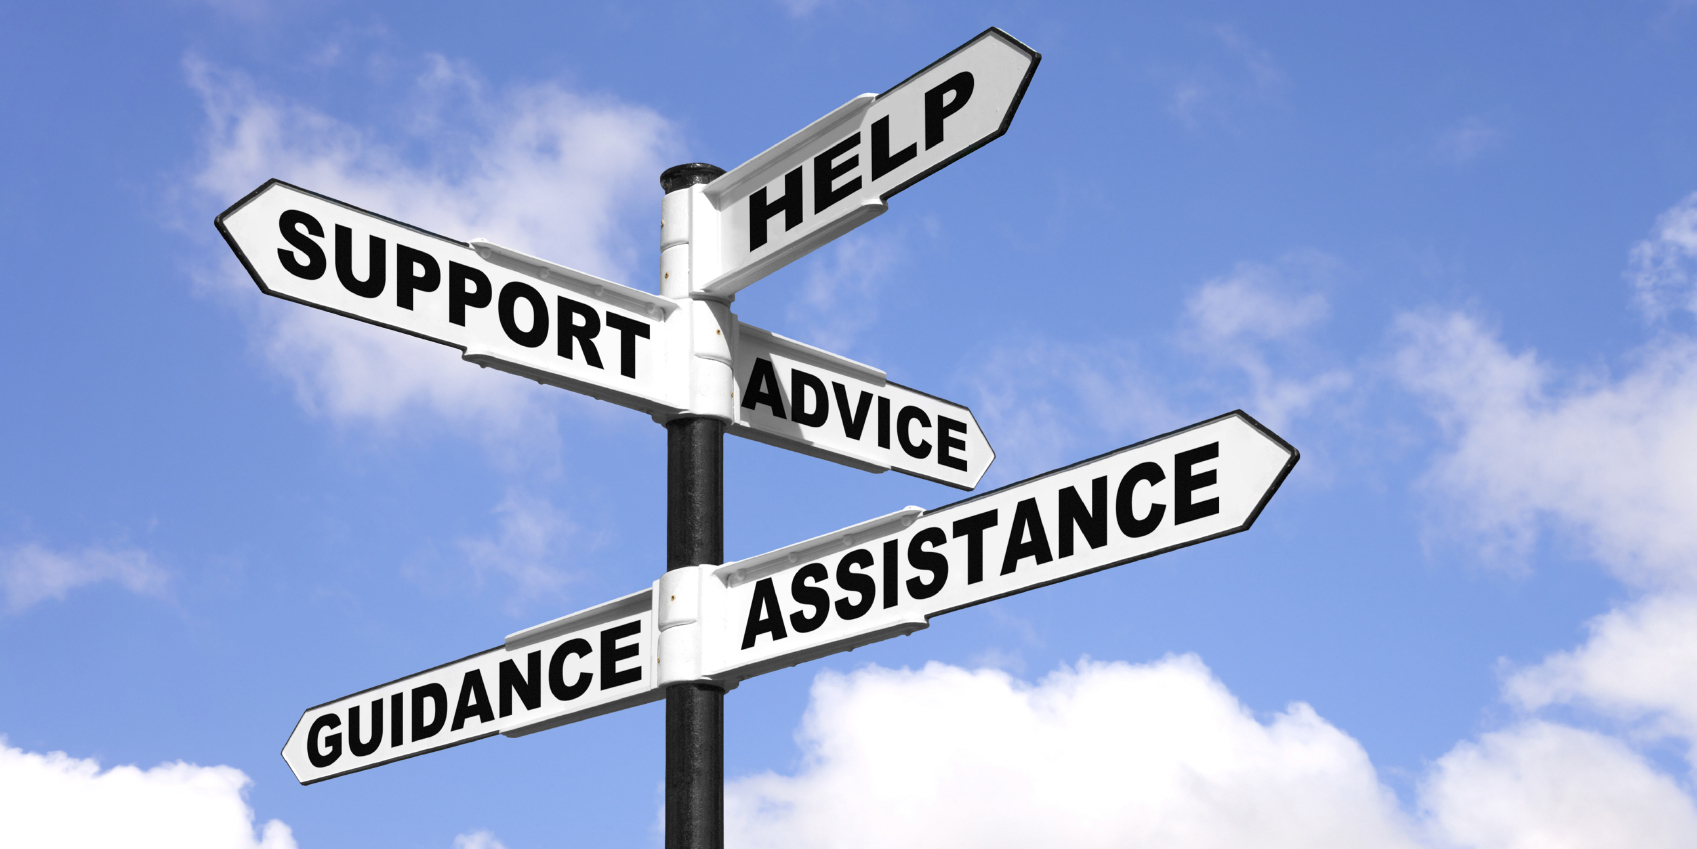 SIGNPOST-Advice-Support-etc-1.jpg